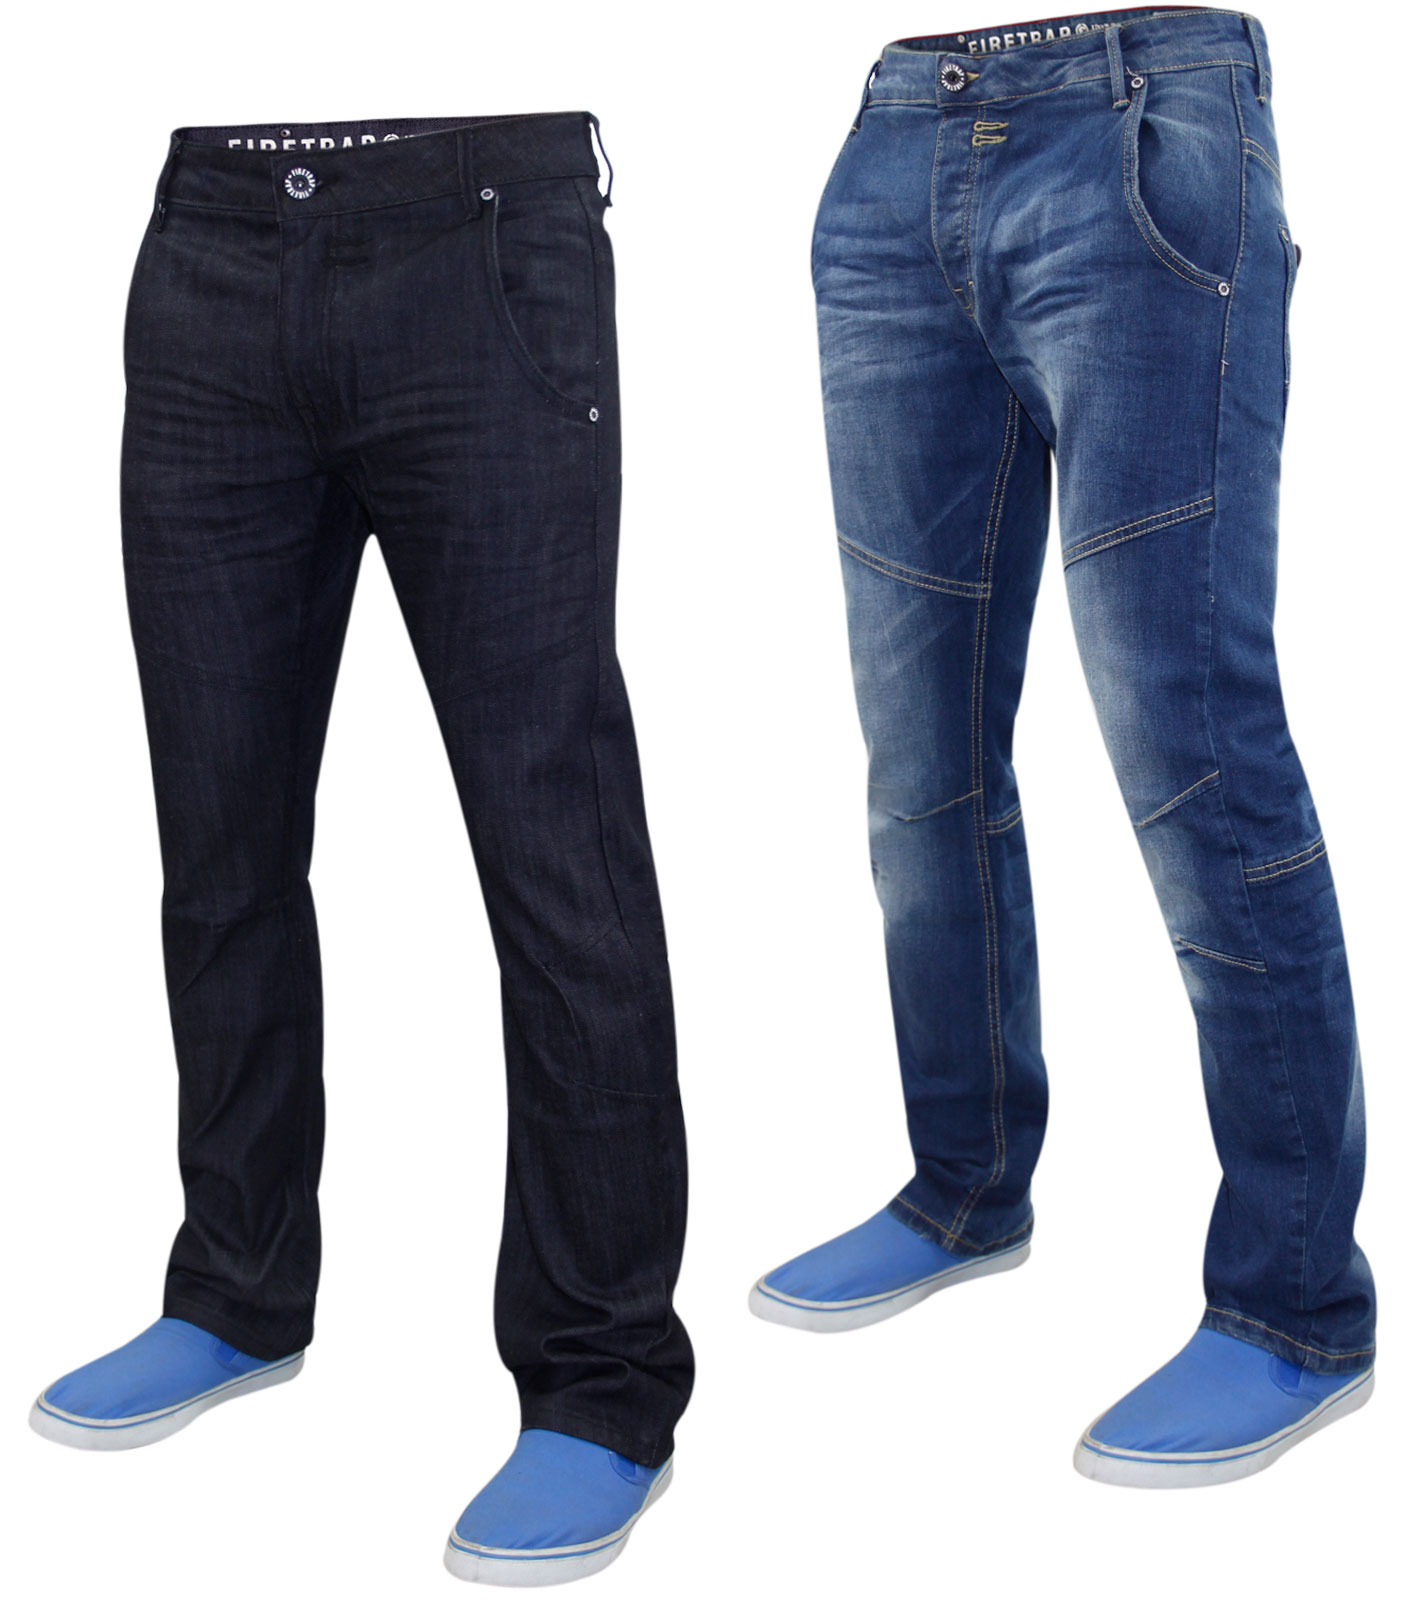 b017953164d New Mens Designer Firetrap Stretch Denim Jeans Regular Fit Curved Cut  trousers